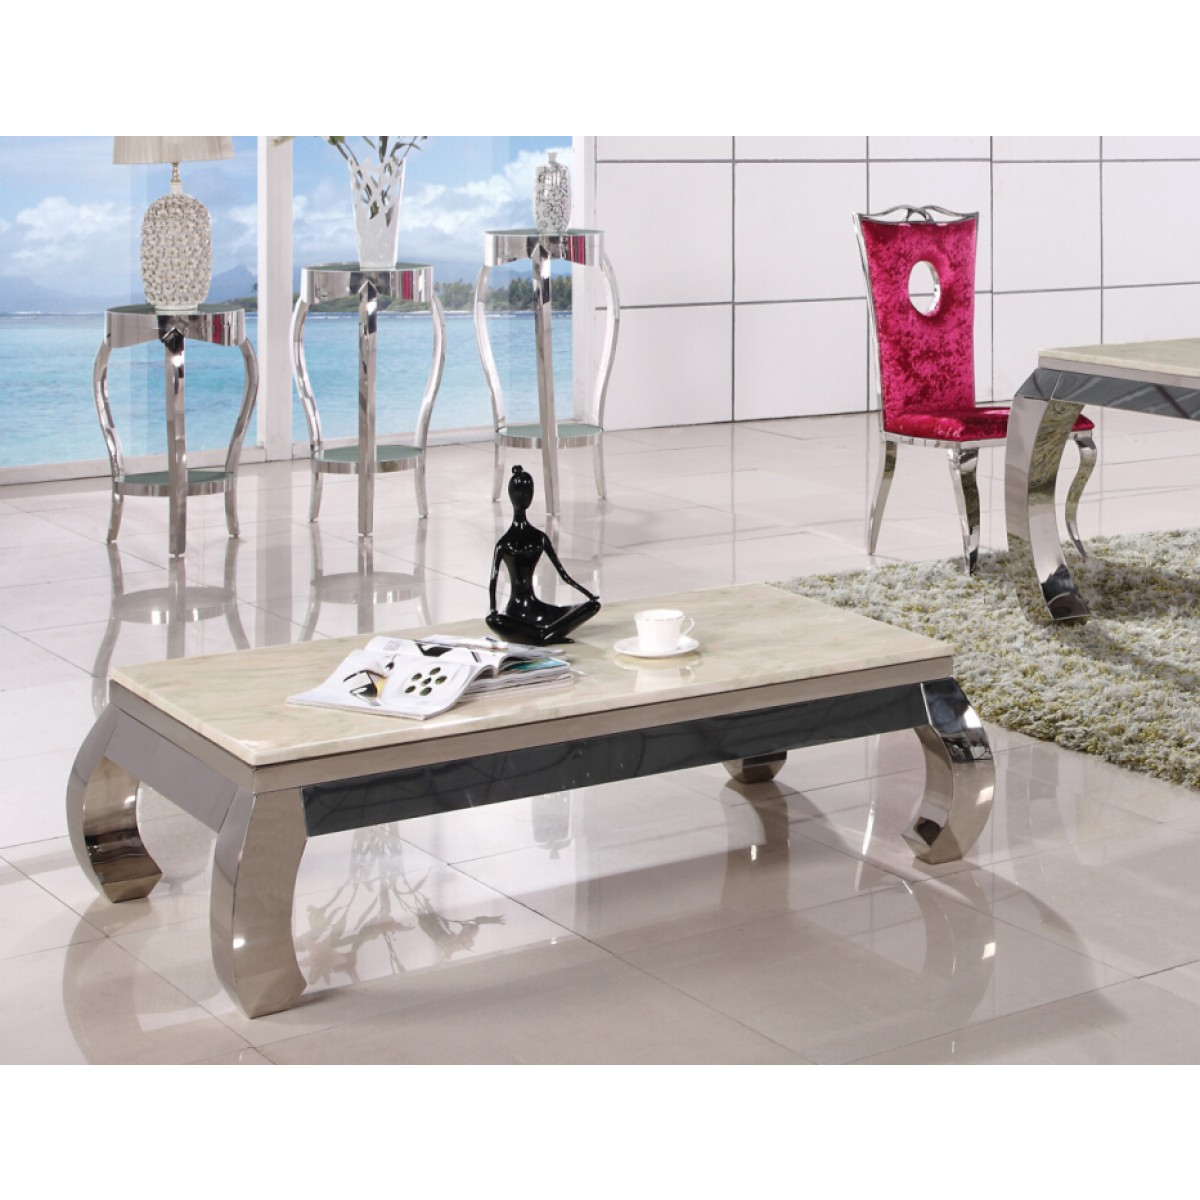 Table basse inox et verre marbre palace tables basses - Table basse marbre design ...